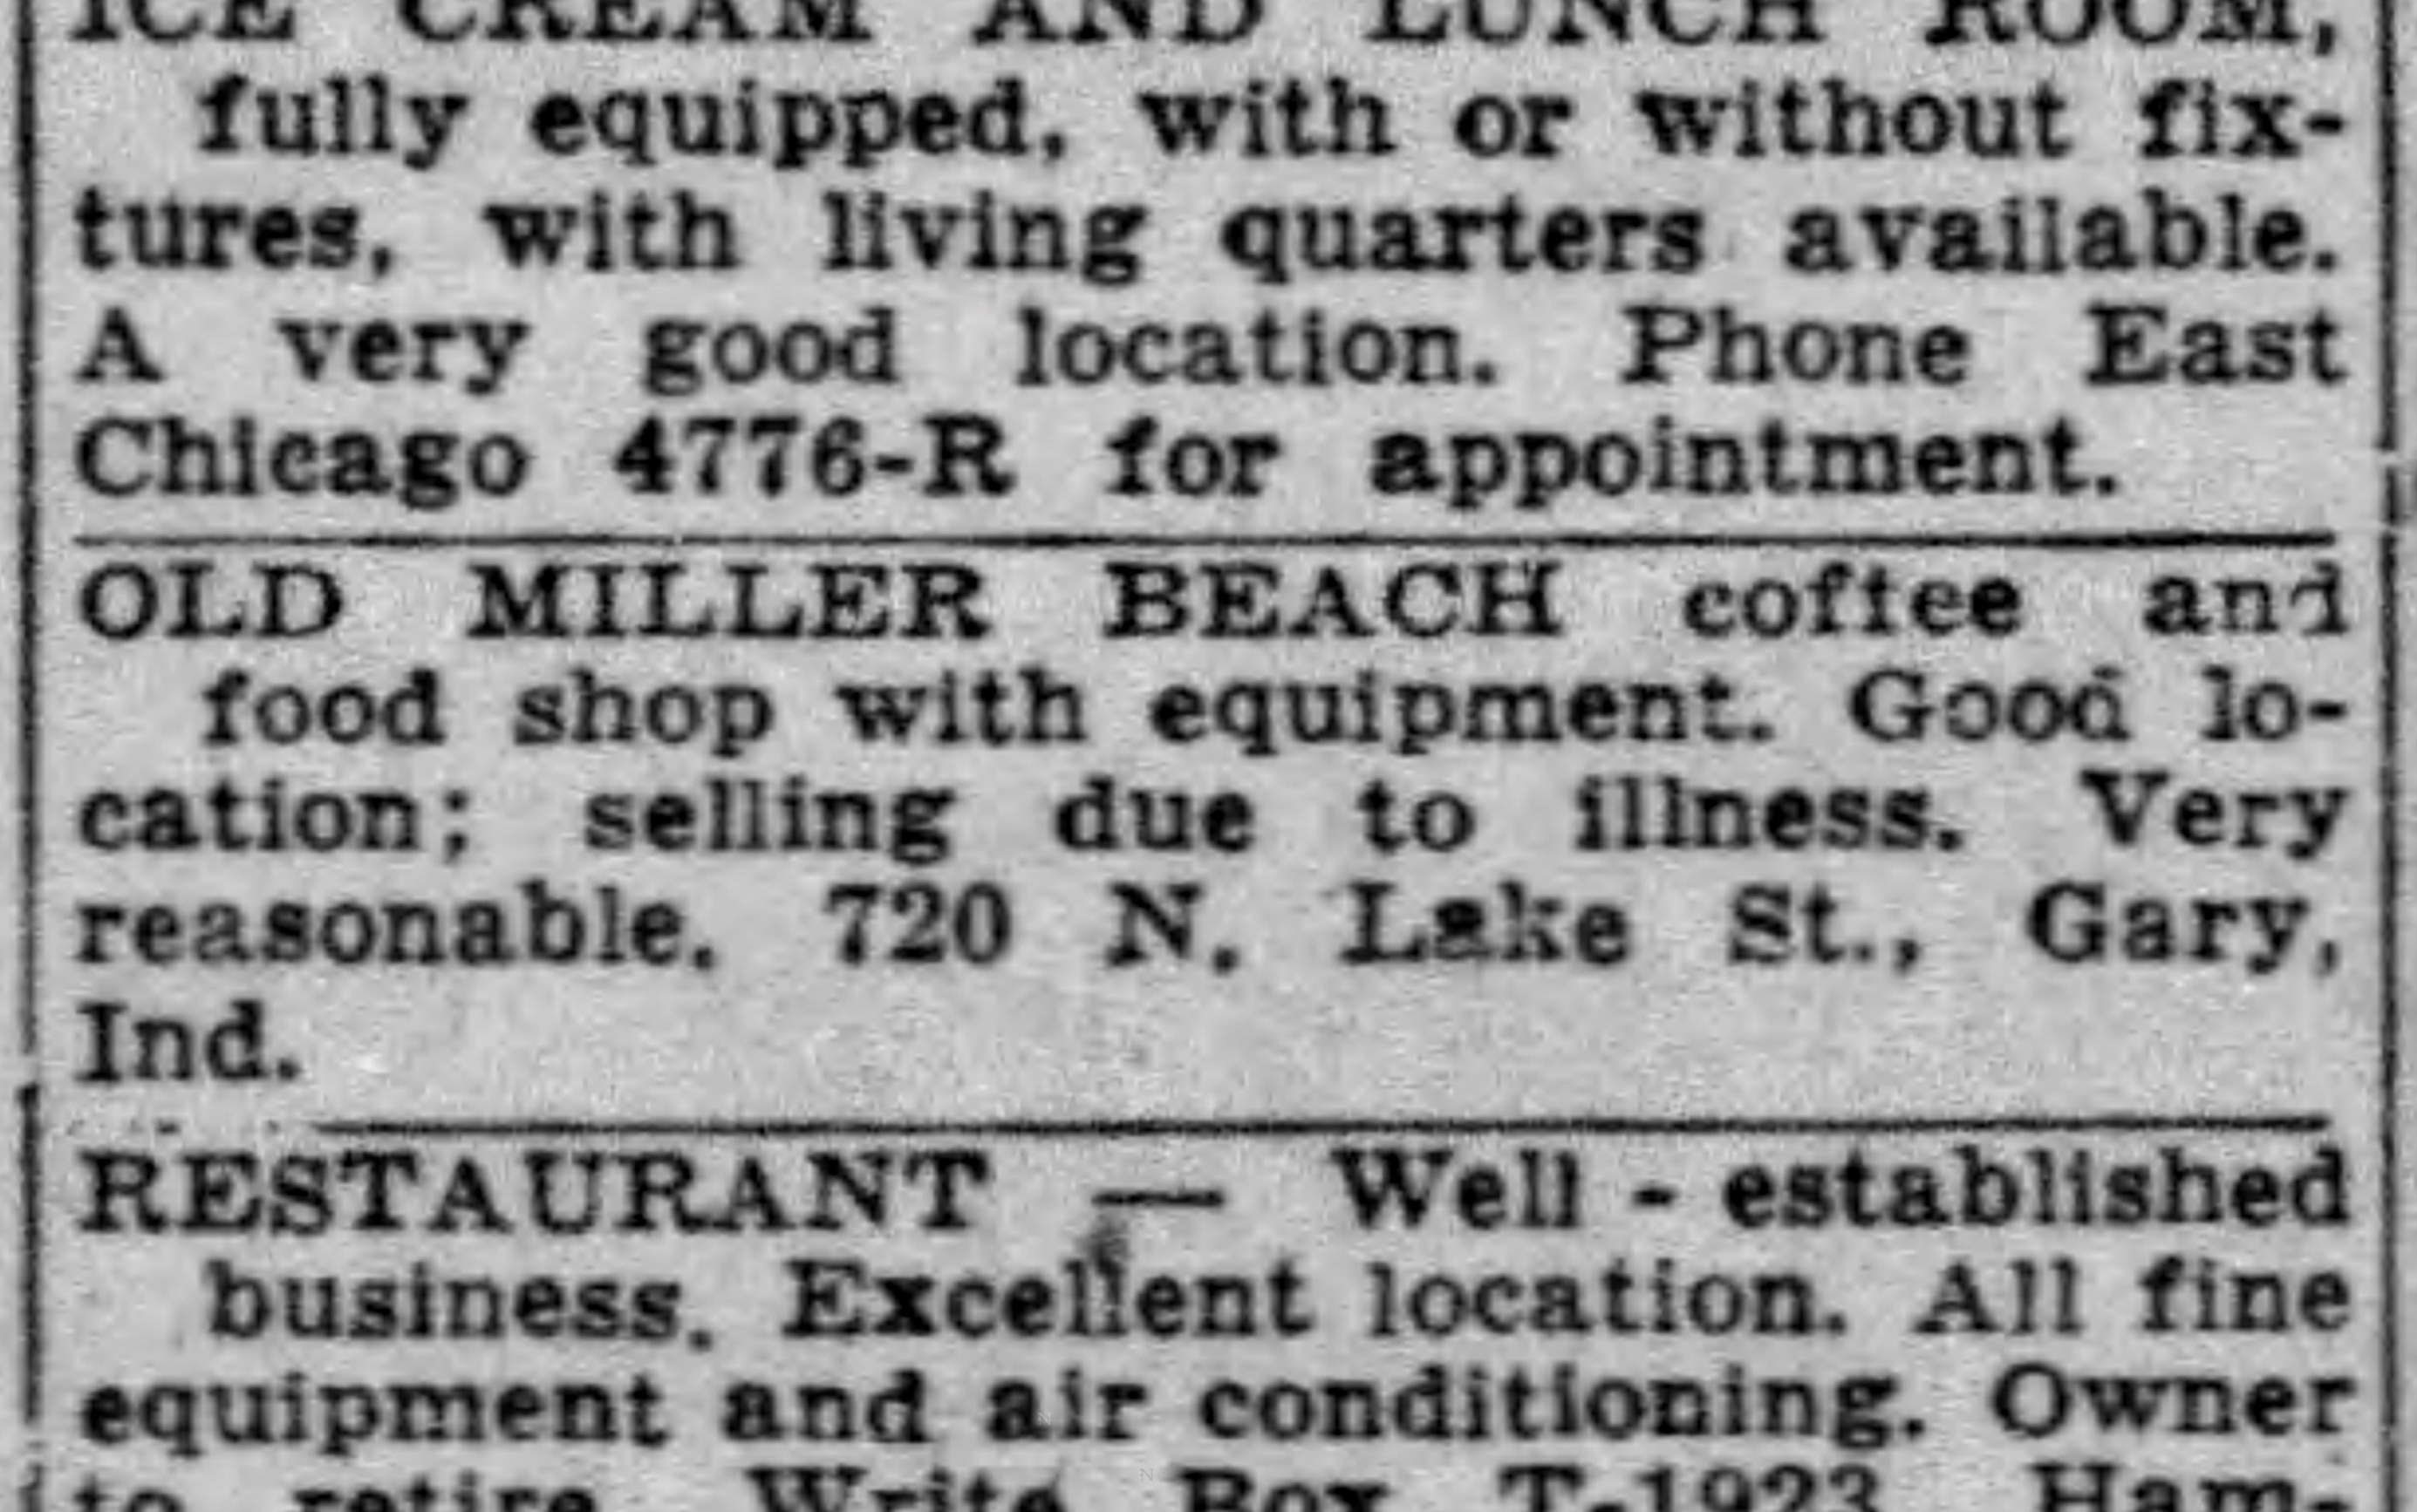 720 N. Lake St., Miller Beach - Hammond Times, August 11, 1953